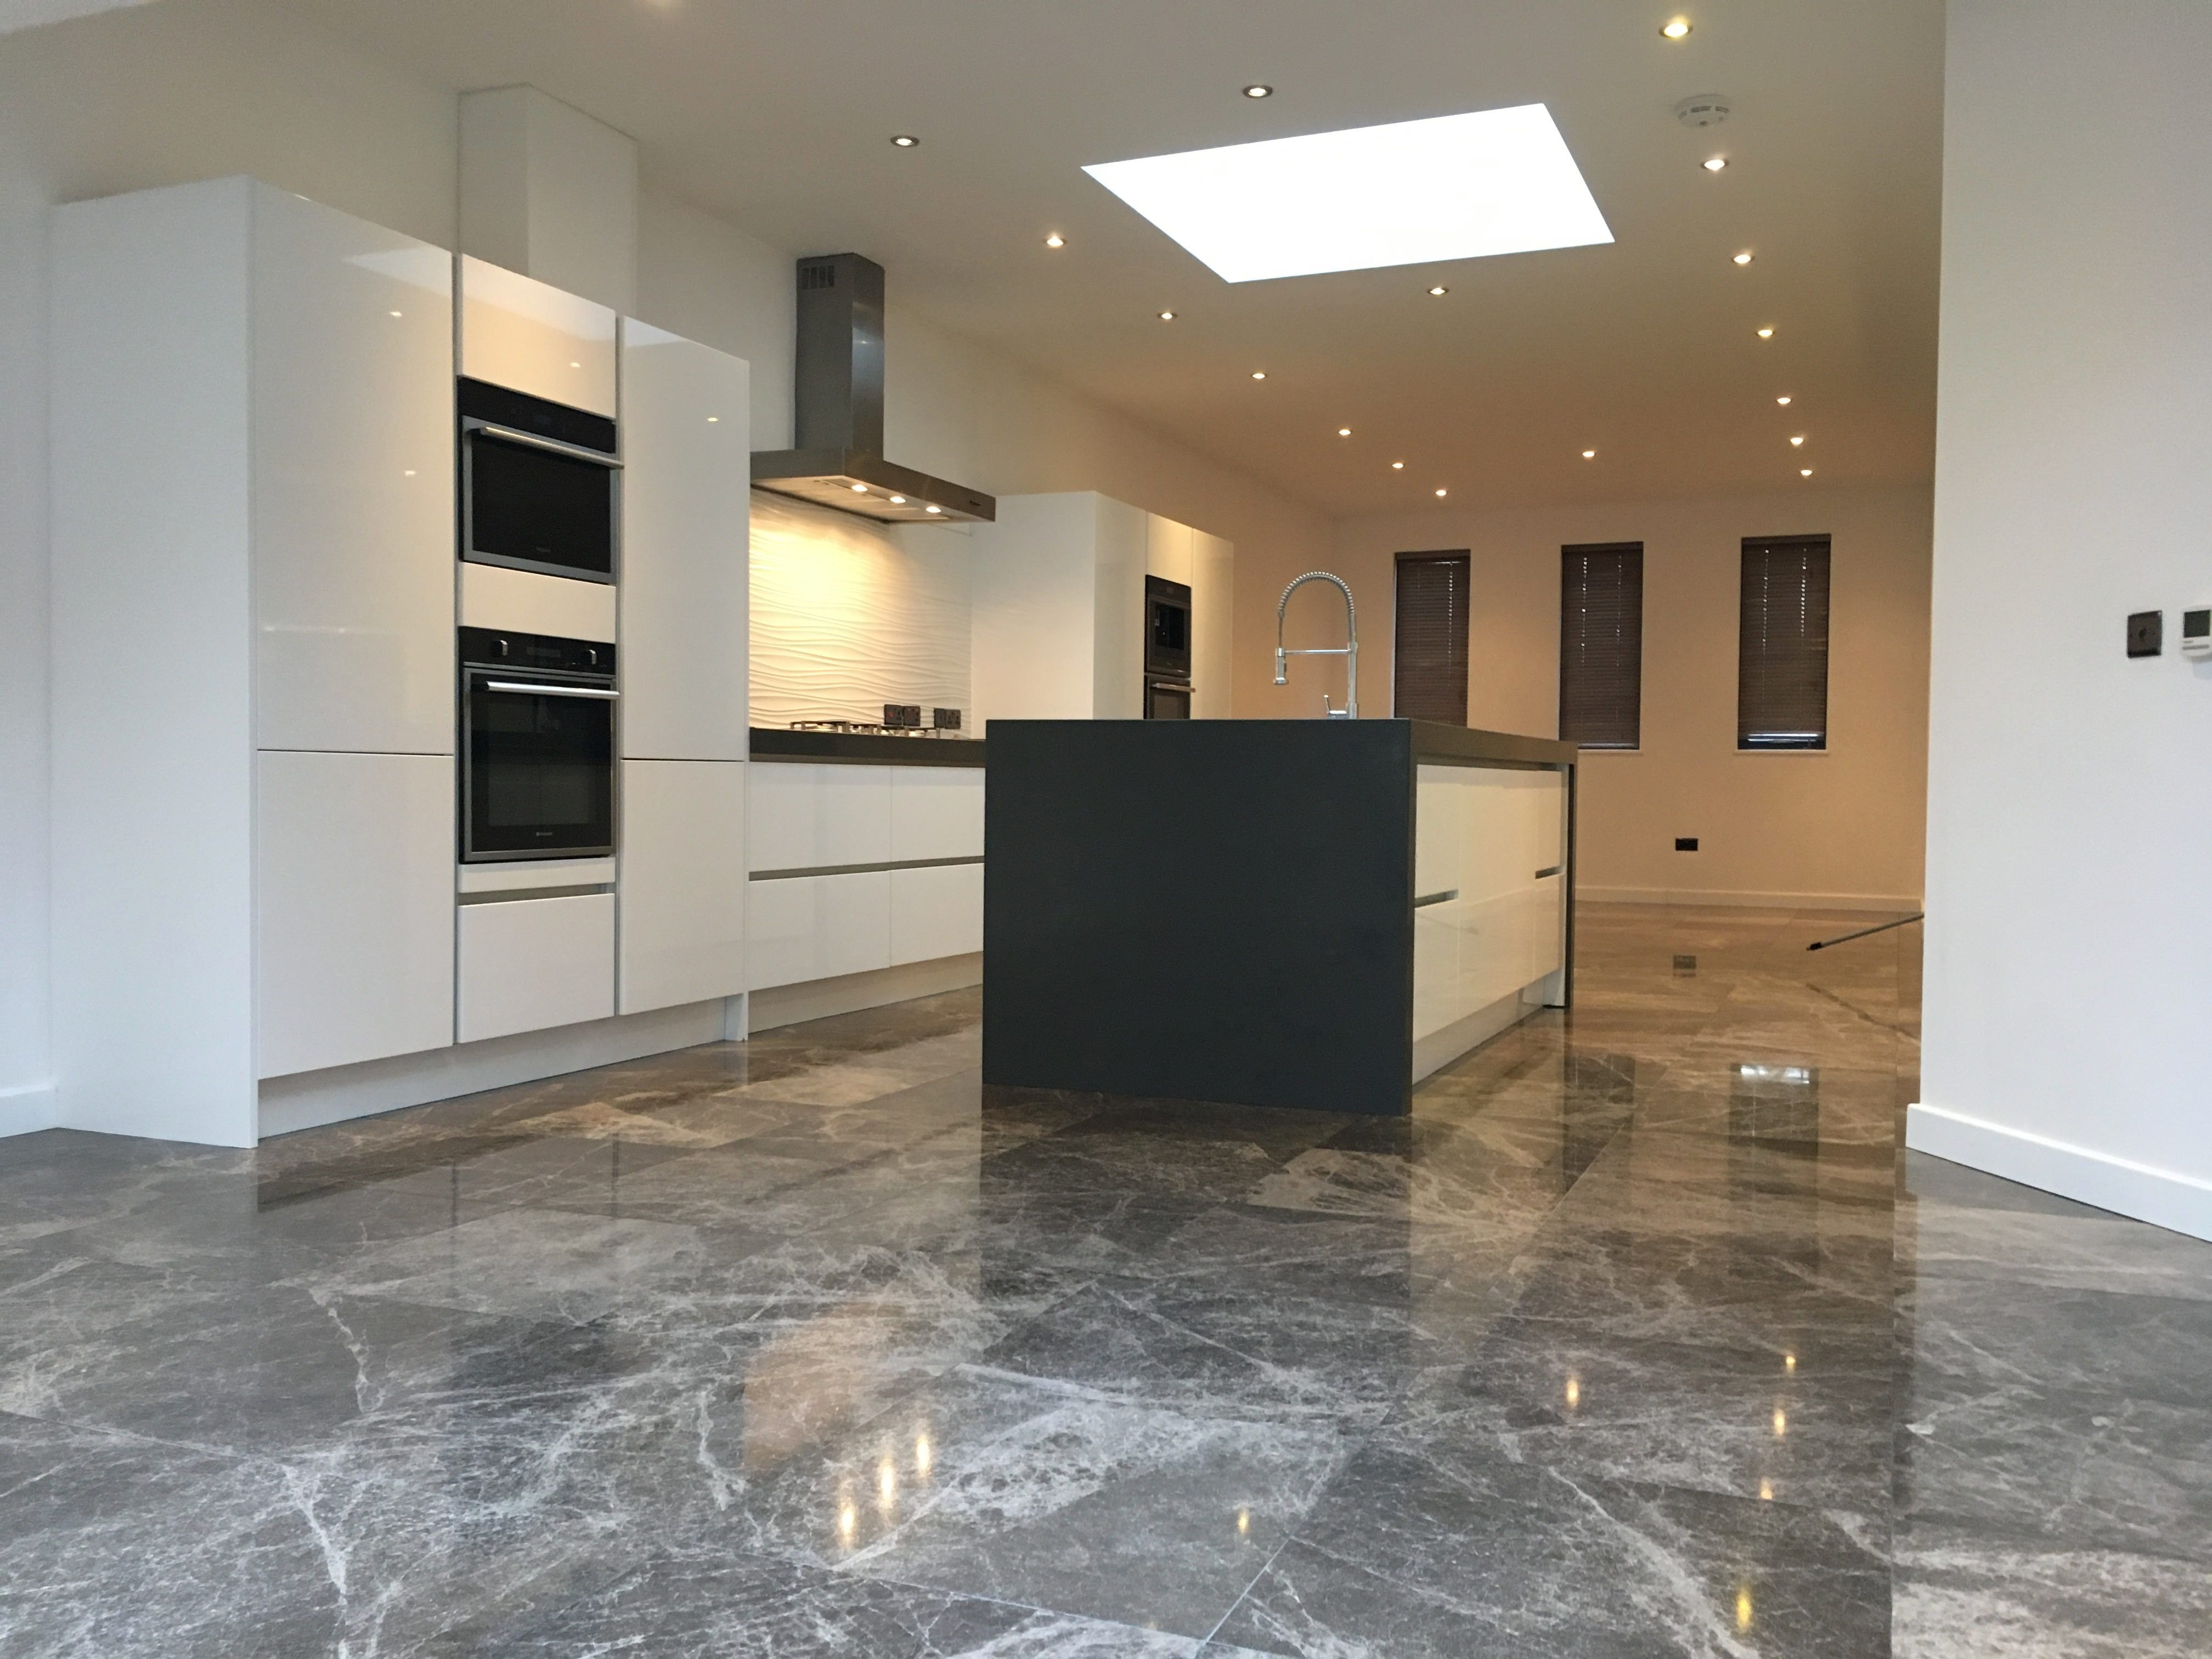 Marble floor cleaning company restoring polishing and sealing marble marble floor cleaning company restoring polishing and sealing marble kitchen floor brighton hove east sussex dailygadgetfo Choice Image